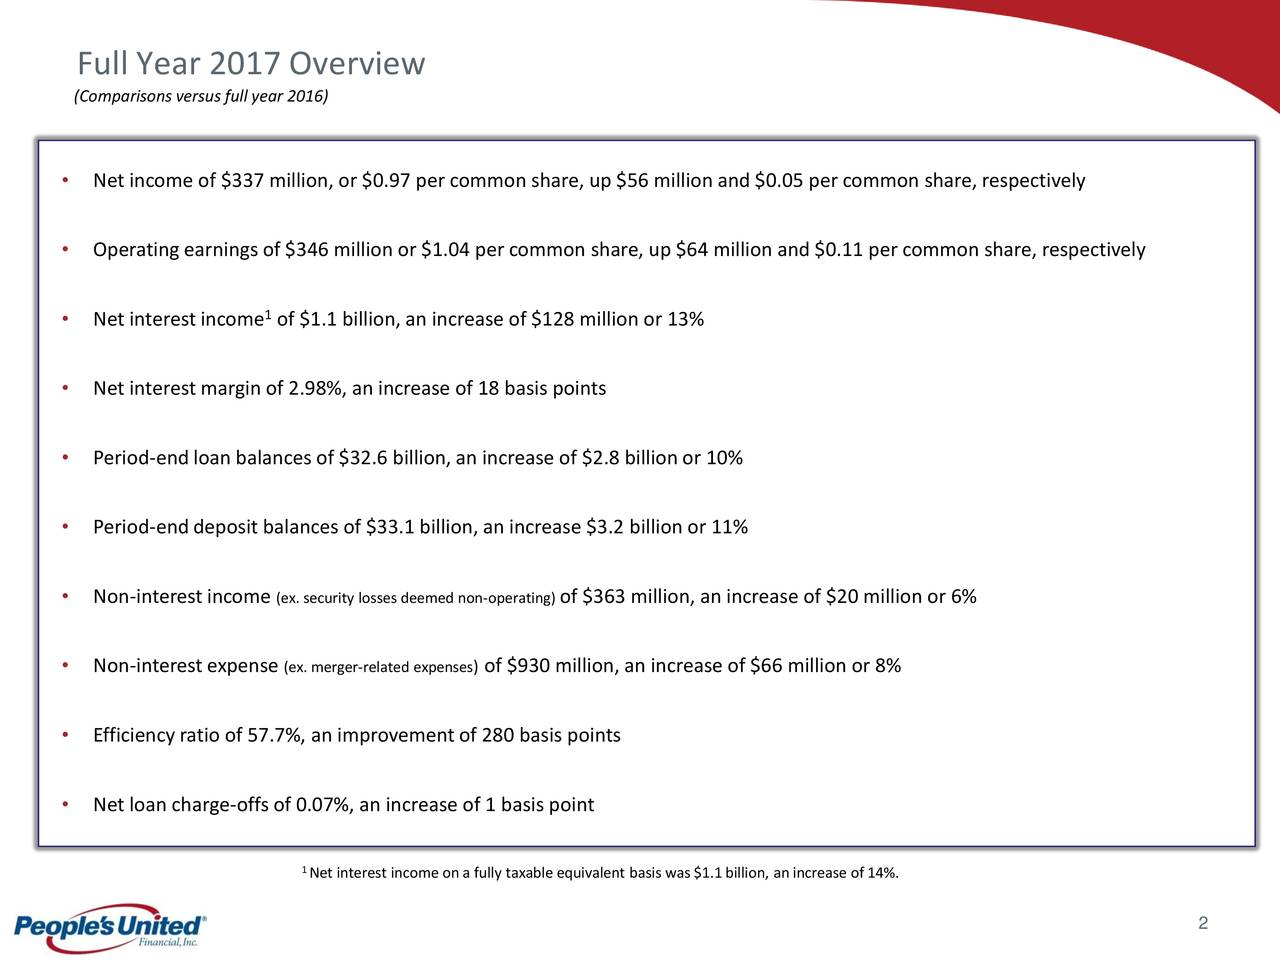 (Comparisons versus full year 2016) • Net income of $337 million, or $0.97 per common share, up $56 million and $0.05 per common share, respectively • Operating earnings of $346 million or $1.04 per common share, up $64 million and $0.11 per common share, respectively • Net interest income of $1.1 billion, an increase of $128 million or 13% • Net interest margin of 2.98%, an increase of 18 basis points • Period-endloan balances of $32.6 billion, an increase of $2.8 billion or 10% • Period-enddeposit balances of $33.1 billion, an increase $3.2 billion or 11% • Non-interest income (ex. security losses deemed non-operof $363 million, an increase of $20 million or 6% • Non-interest expense (ex. merger-related expensof $930 million, an increase of $66 million or 8% • Efficiency ratio of 57.7%, an improvement of 280 basis points • Net loan charge-offs of 0.07%, an increase of 1 basis point 1Net interest income on a fully taxable equivalent basis was $1.1 billion, an increase of 14%. 2